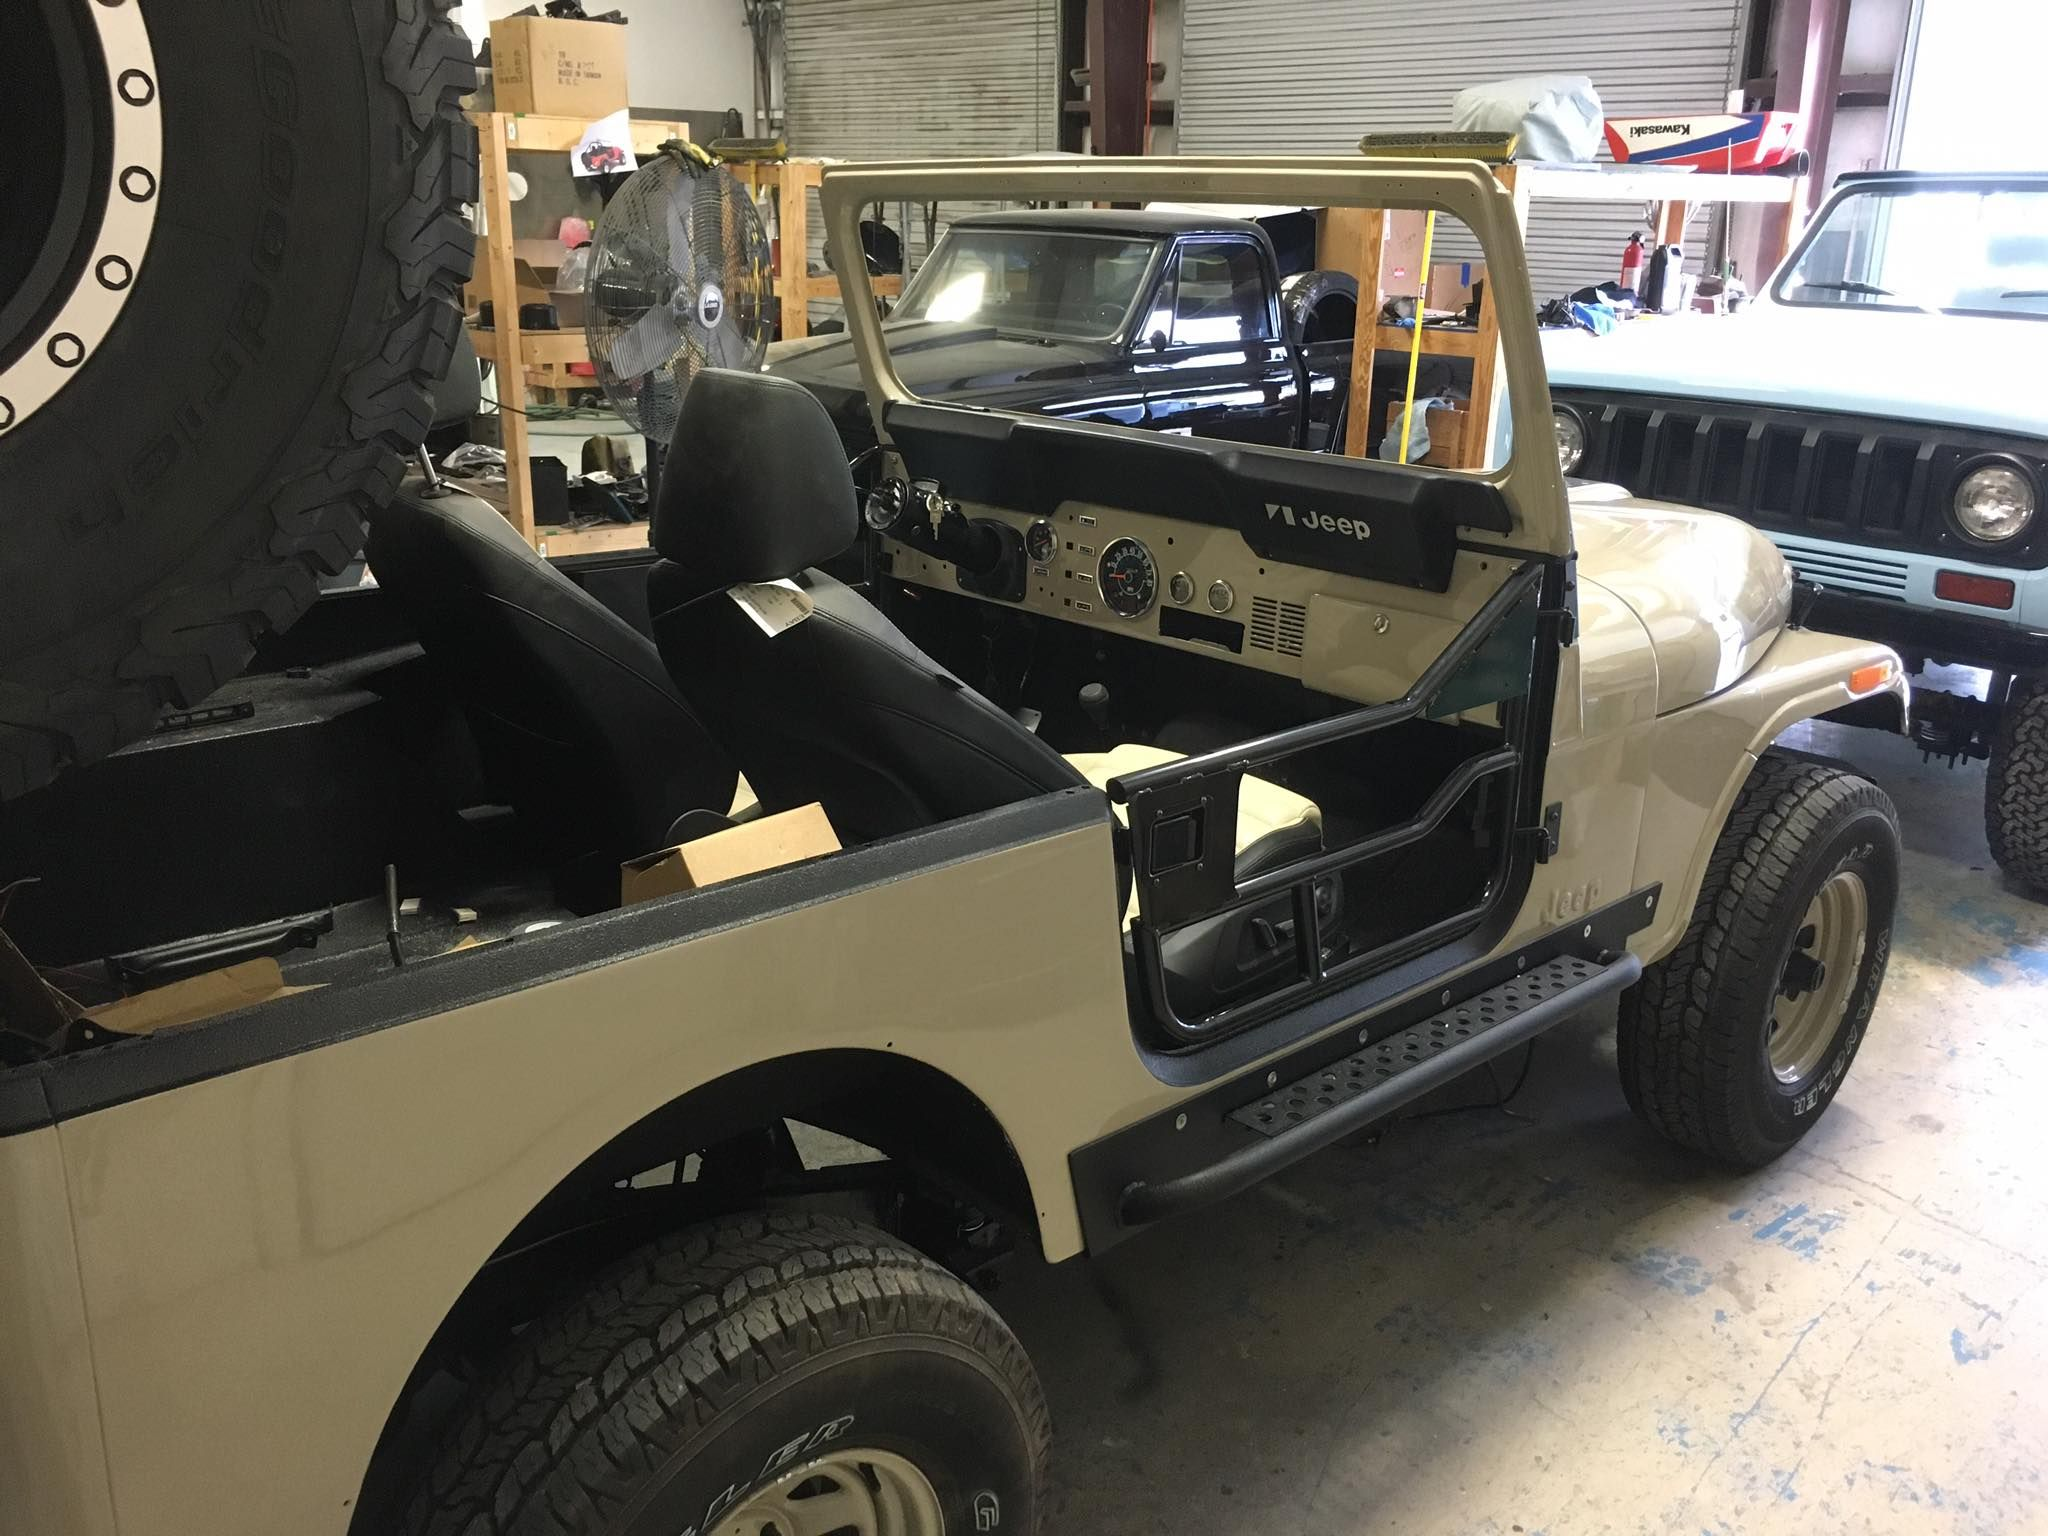 new side rocker tube doors wheels and rims & new side rocker tube doors wheels and rims | Jeep CJ7 - FOR SALE ...